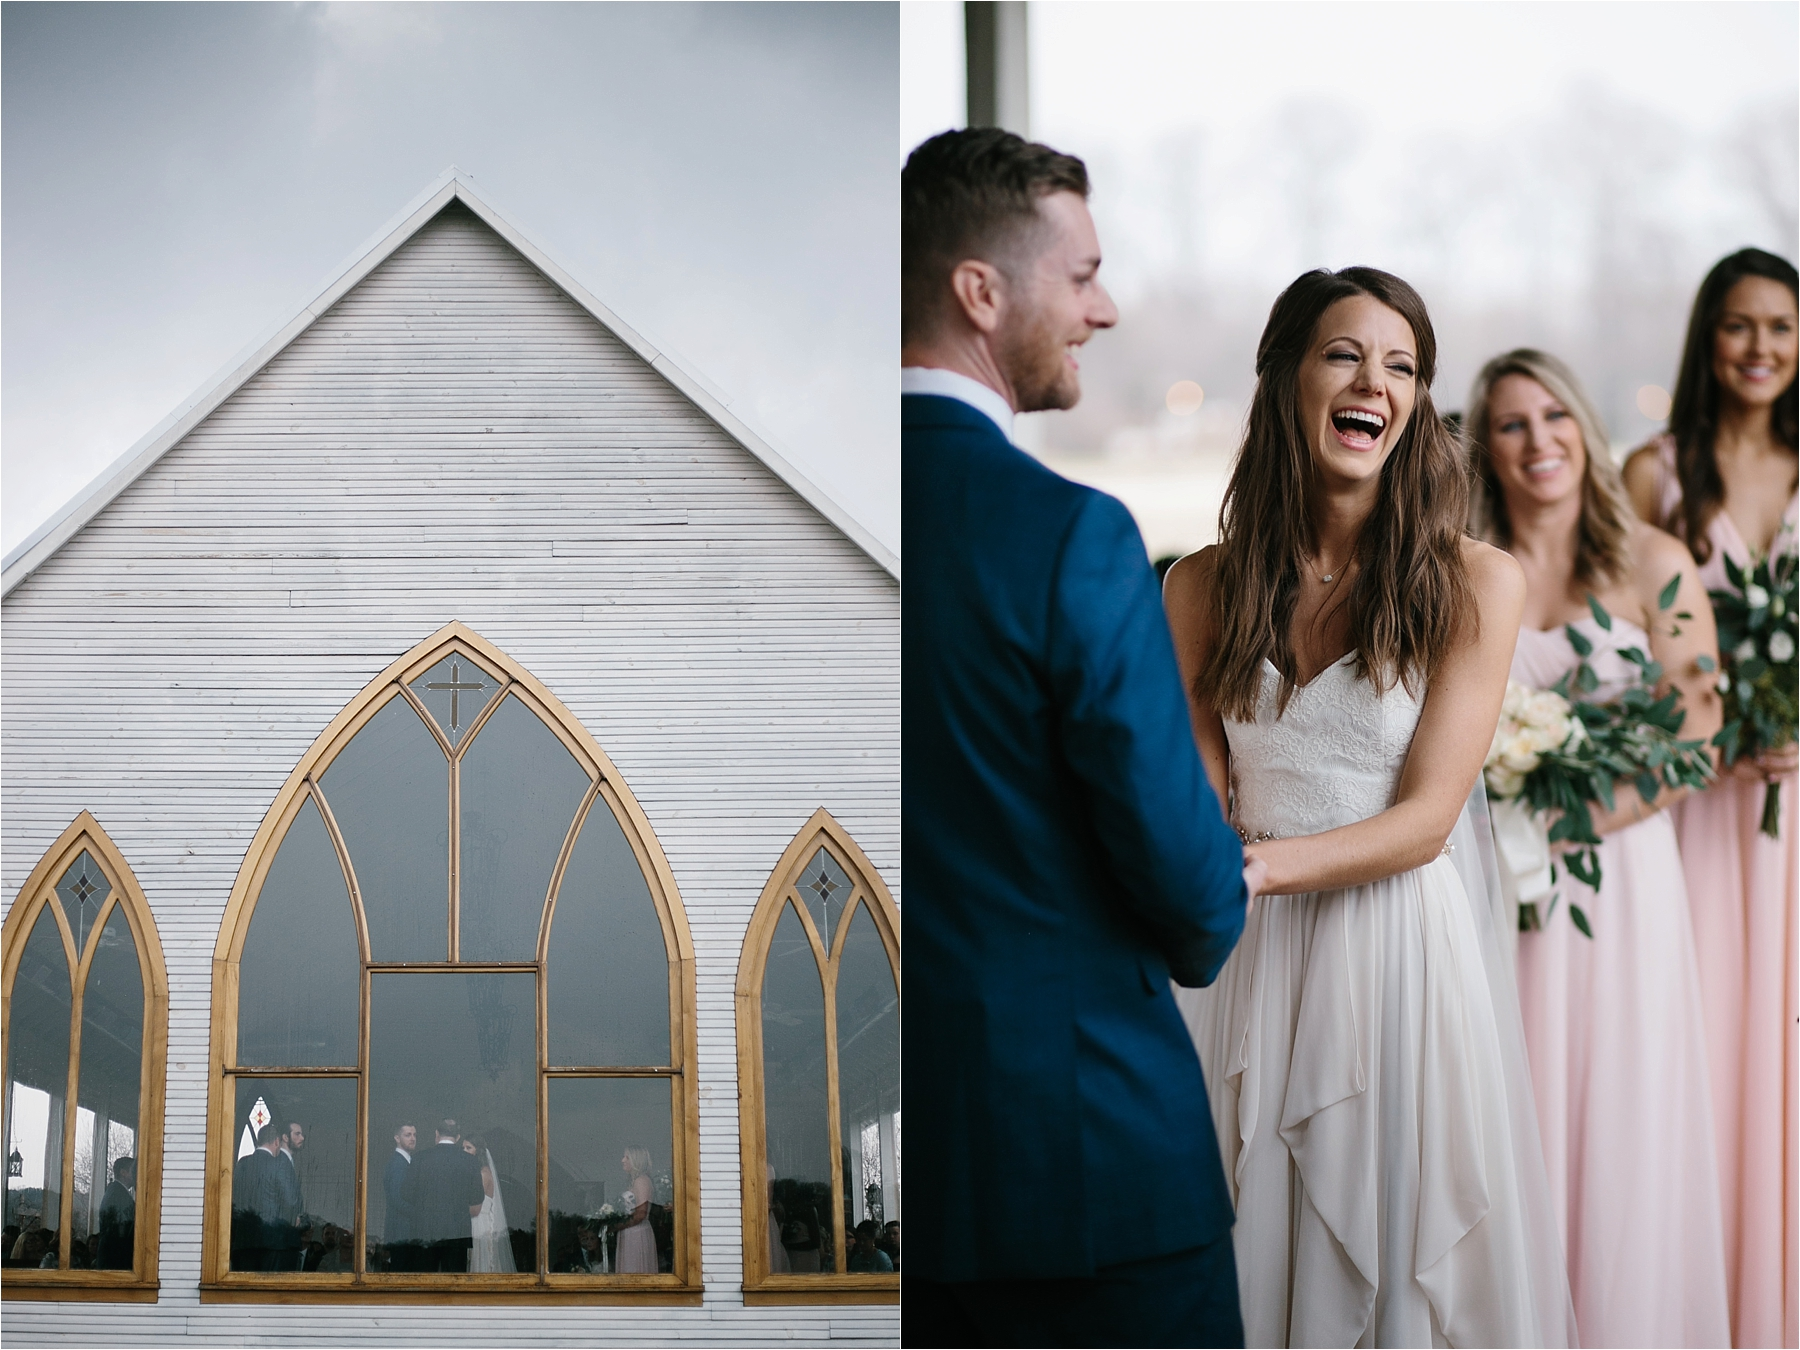 Lauren + Matt __ an intimate, emotional, blush pink, navy blue, and greenery toned wedding accents at the Brooks at Weatherford by North Texas Wedding Photographer Rachel Meagan Photography123